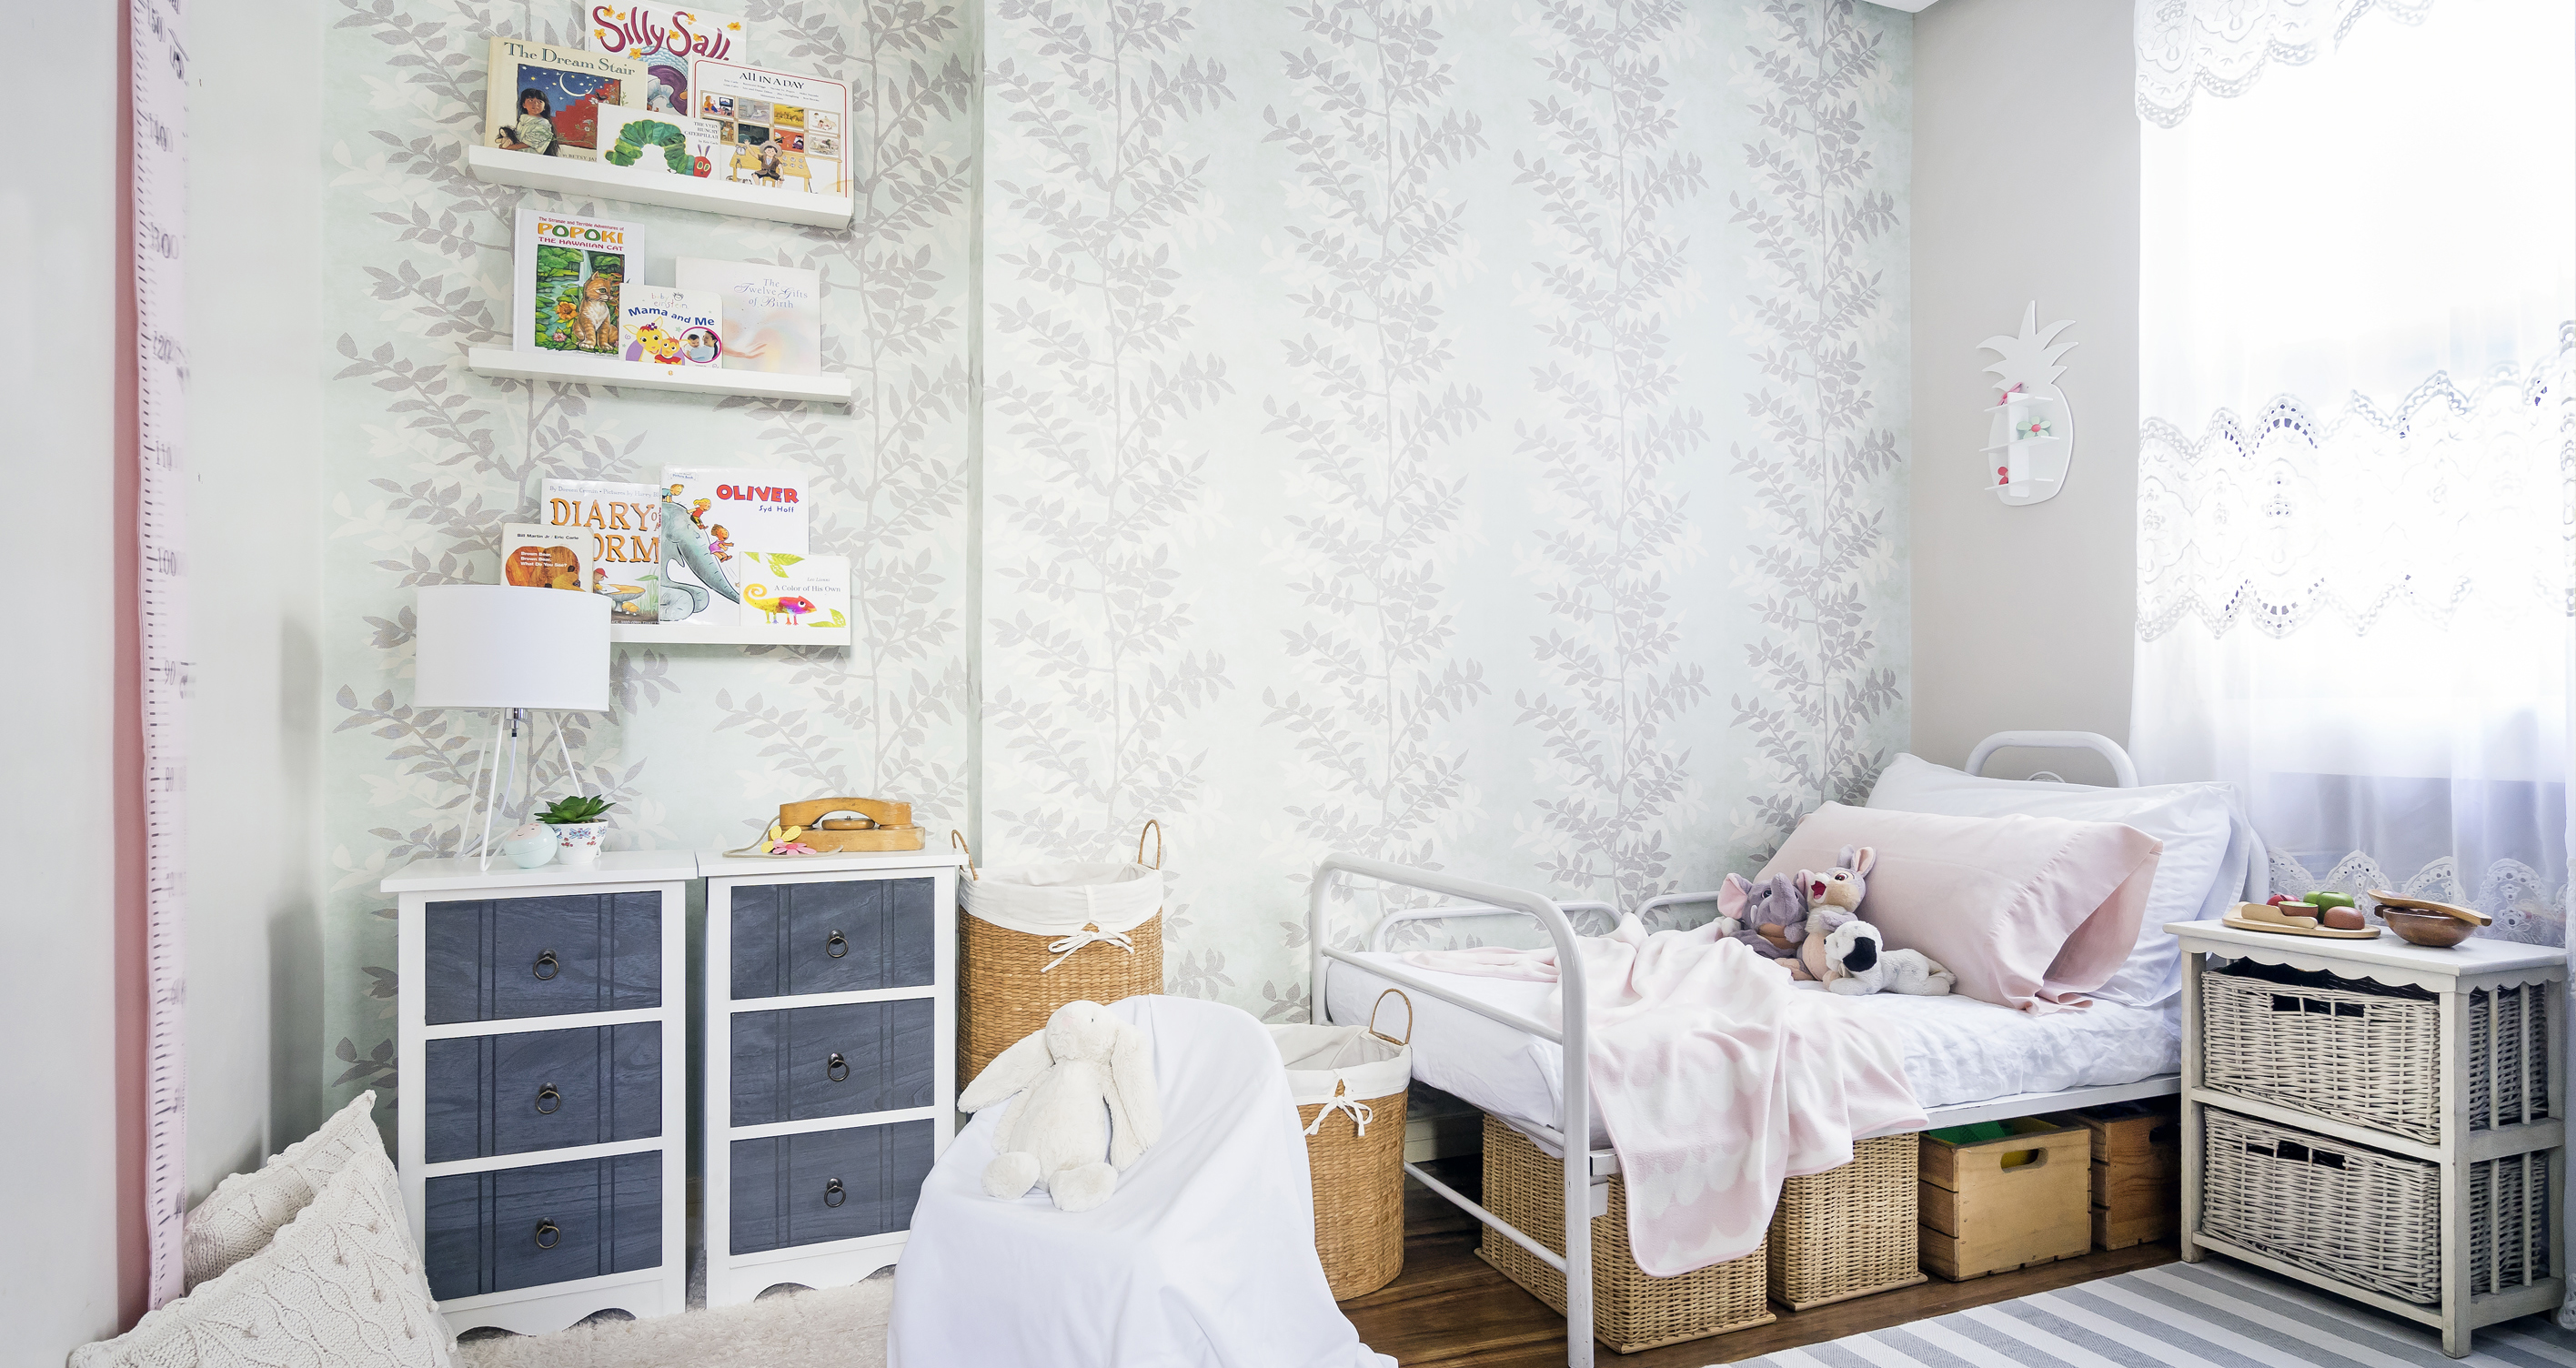 Nursery room with botanical-print wallpaper and pink and gray accents by interior designer Gal at Home